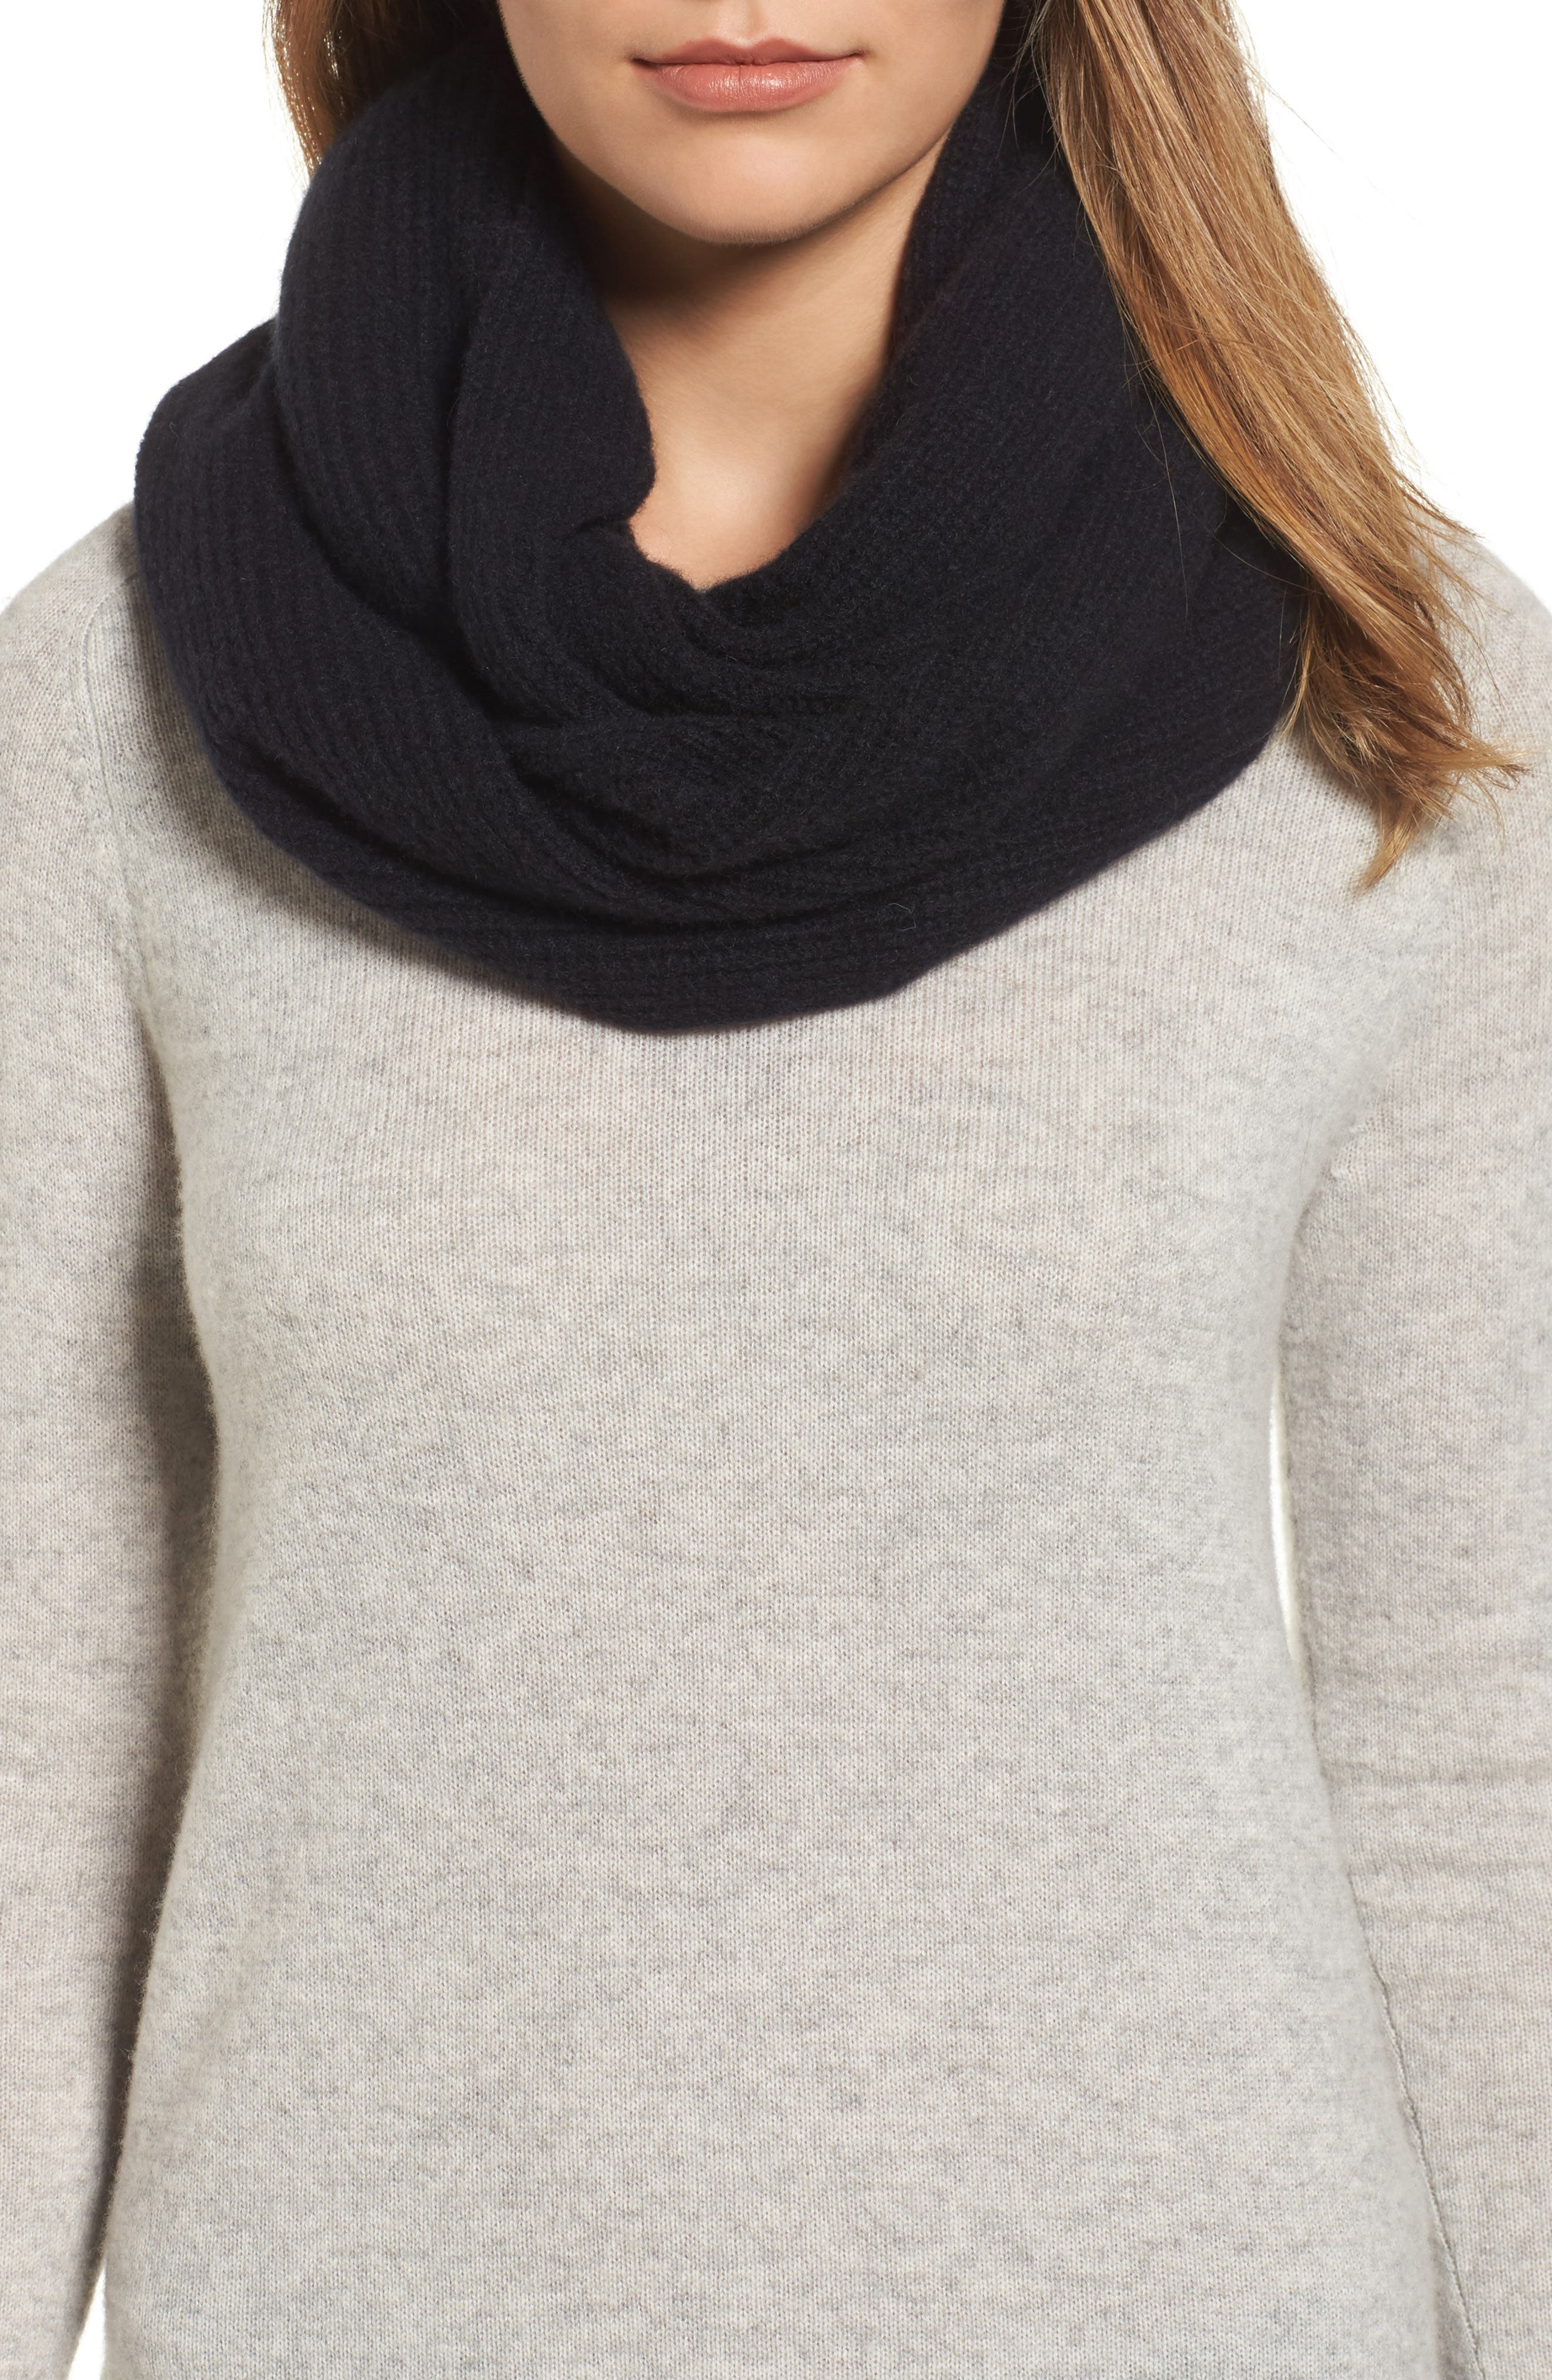 Cashmere Infinity Scarf,                             Main thumbnail 1, color,